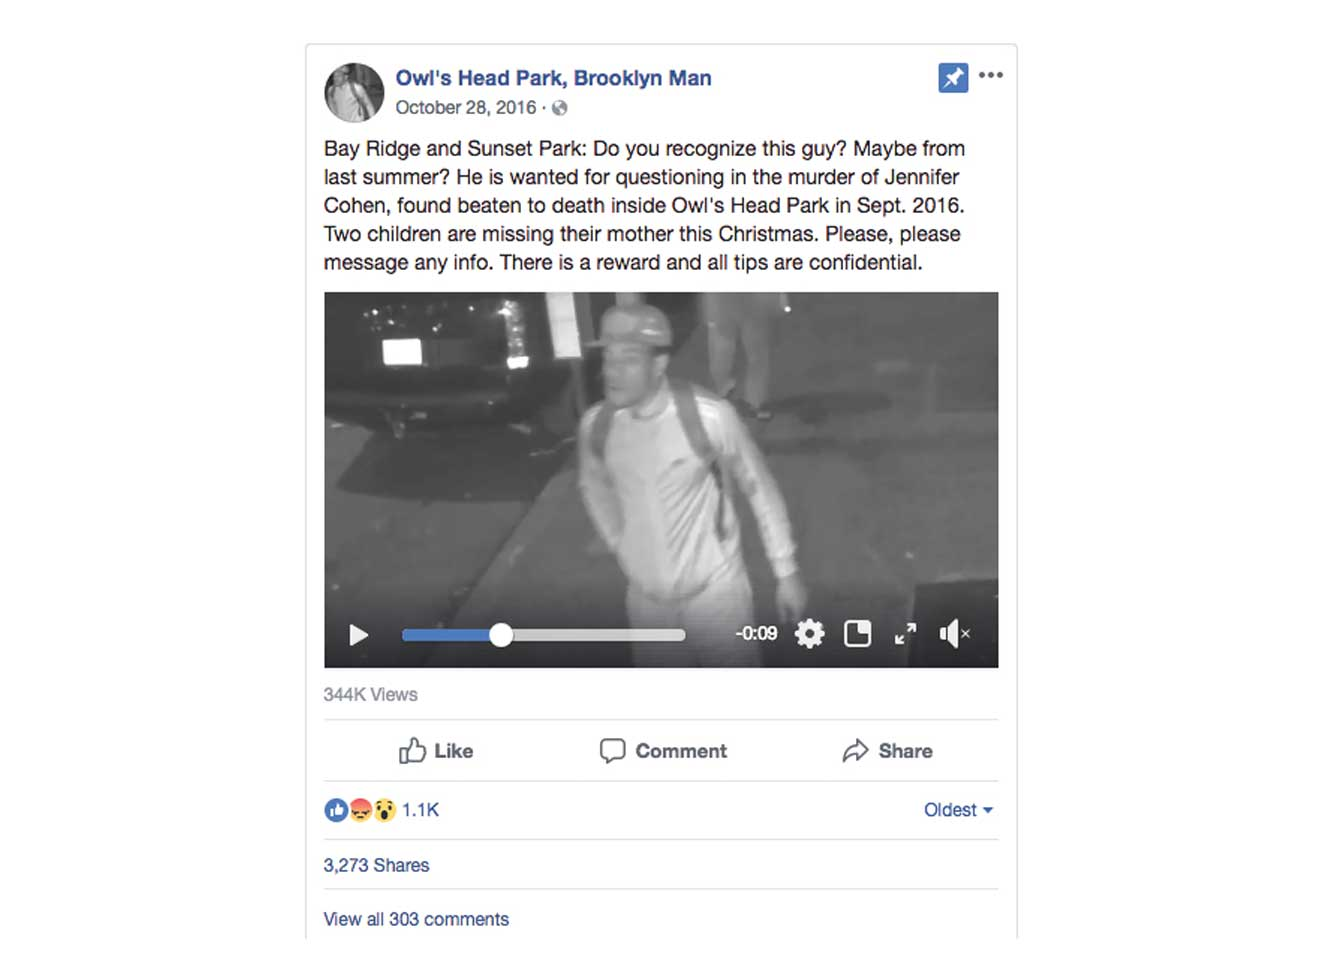 Targeted Facebook ad Billy Jensen posted to gain information on unsolved murders.